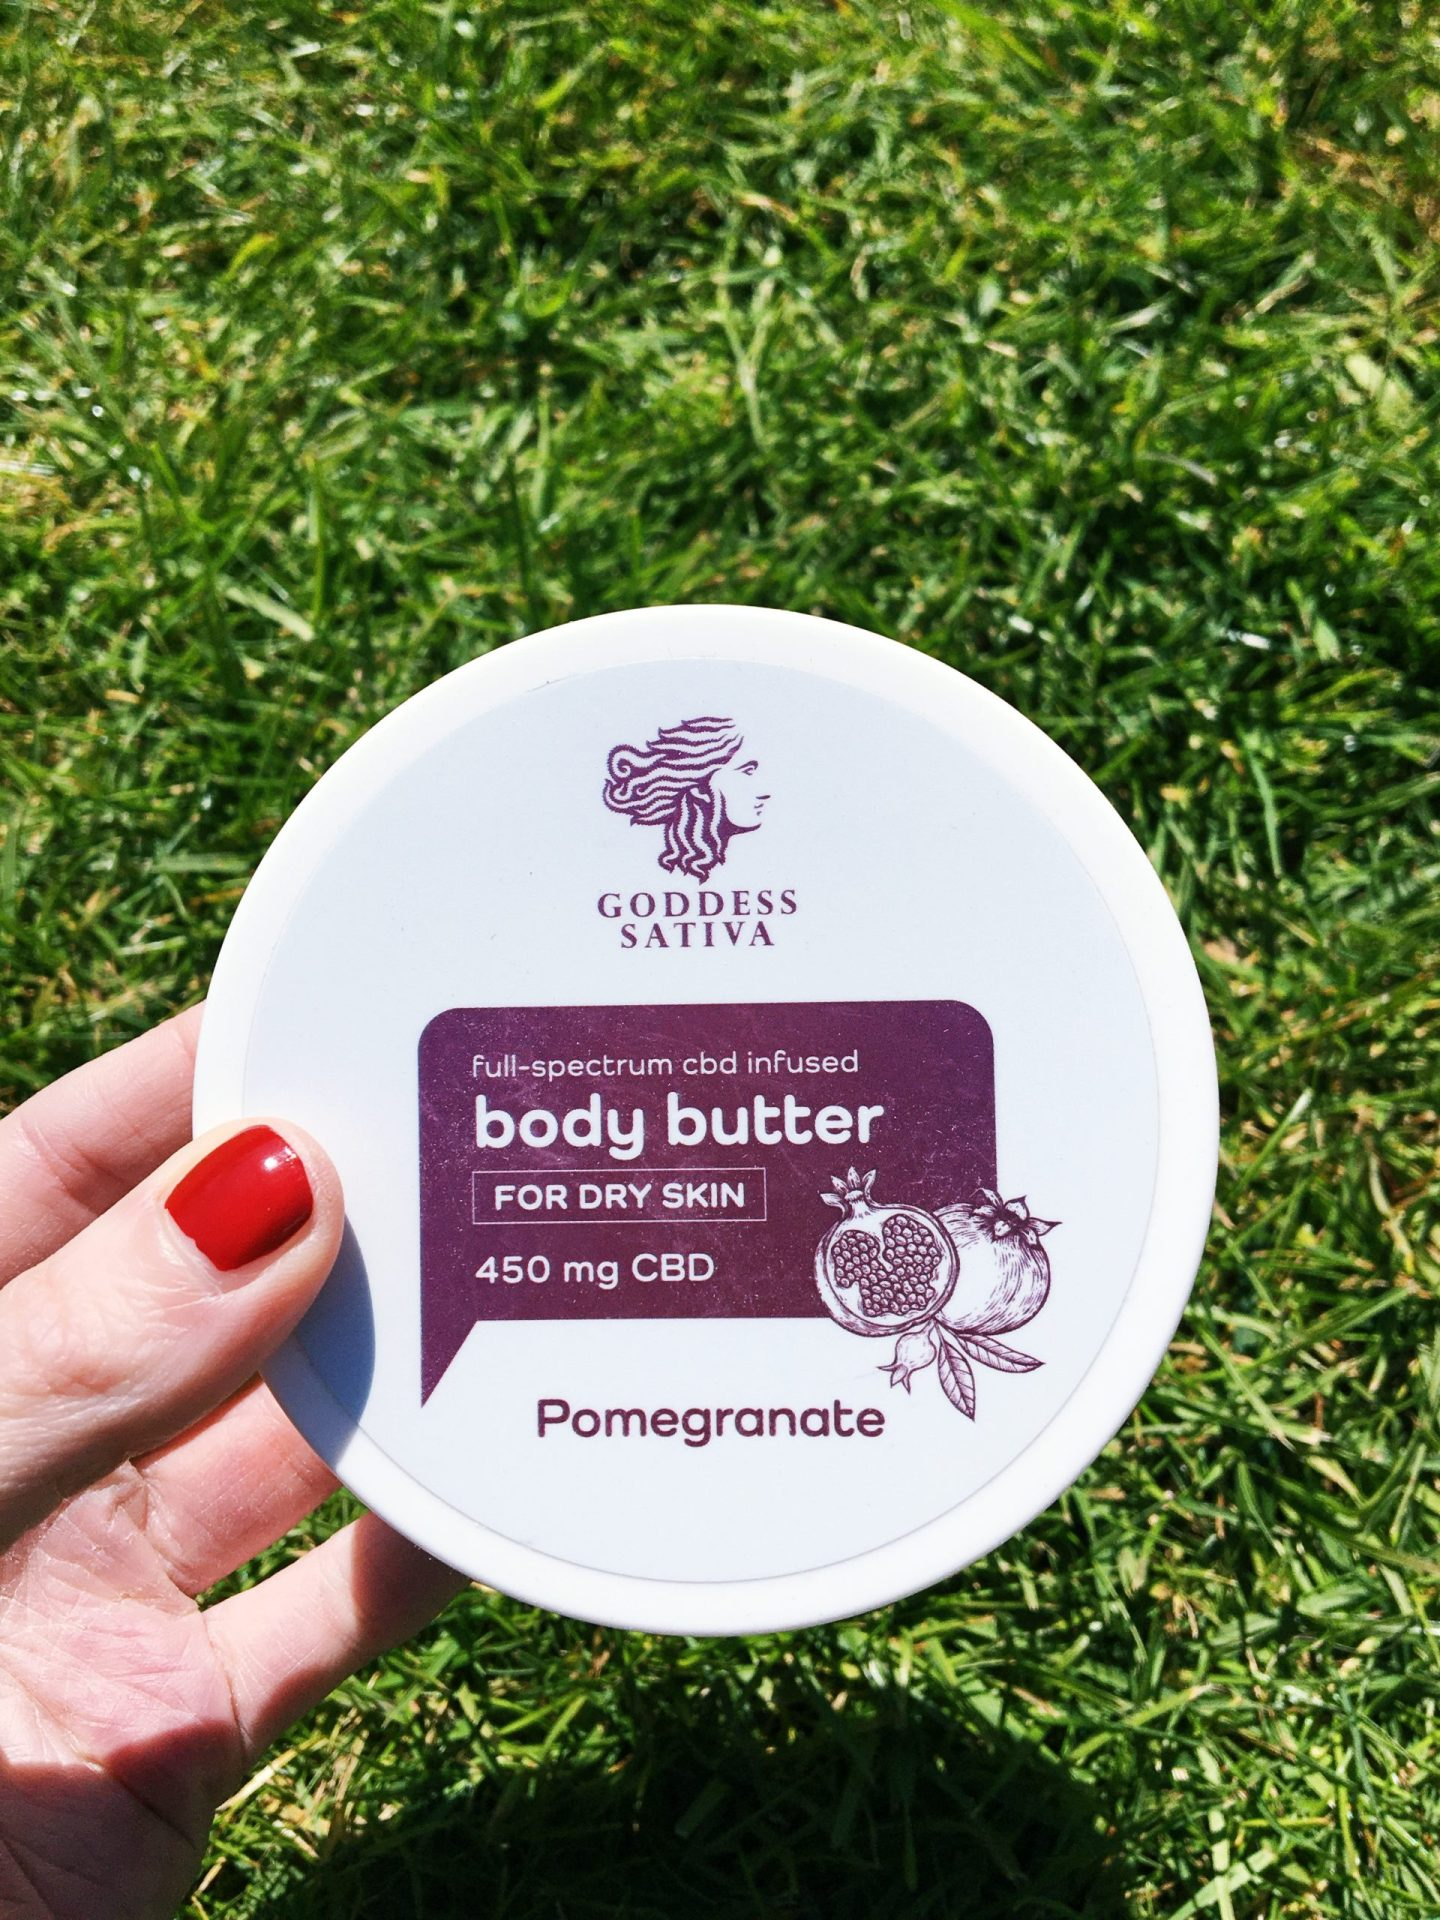 Me holding the body butter. It's a disc-shape tub in white. On the lid is the label in shiny pink. I'm holding the tub and I'm wearing red nail varnish, with the grass in my garden as the background.